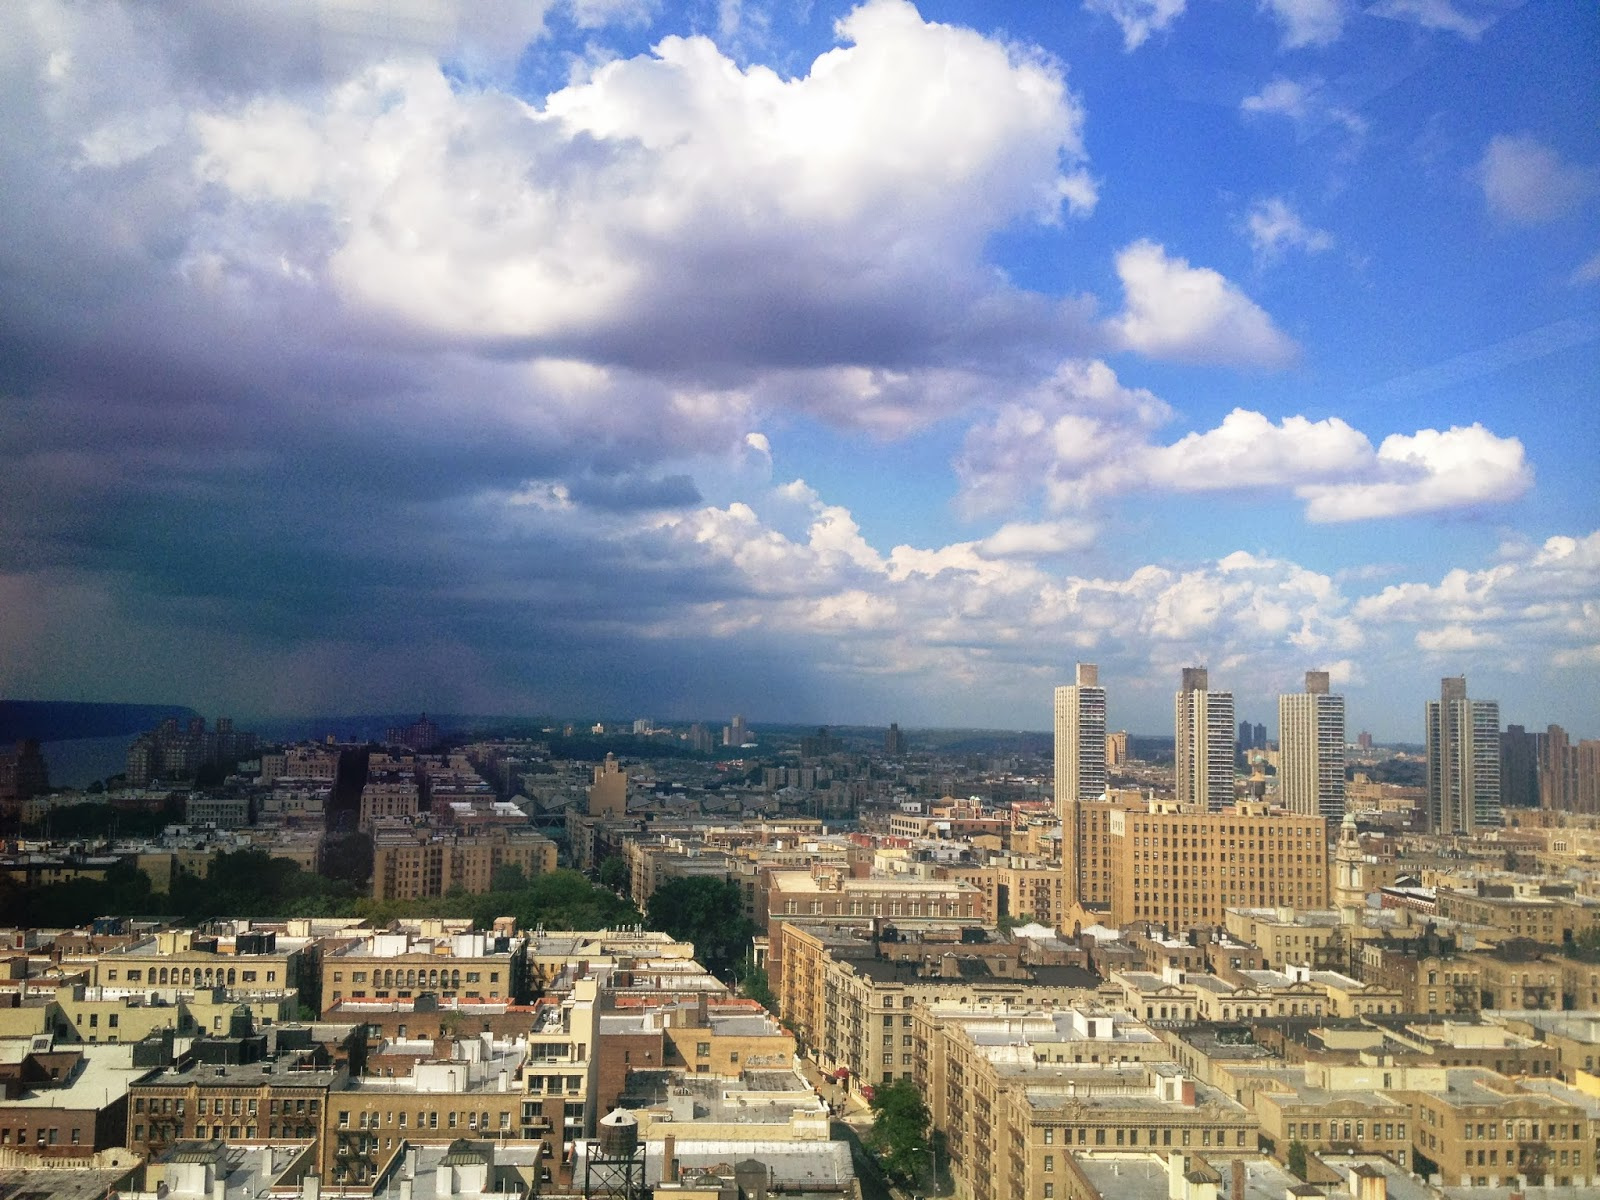 new york city skyline, nyc skyline, washington heights, hudson heights, hudson river, nyc, beautiful clouds, dark clouds approaching